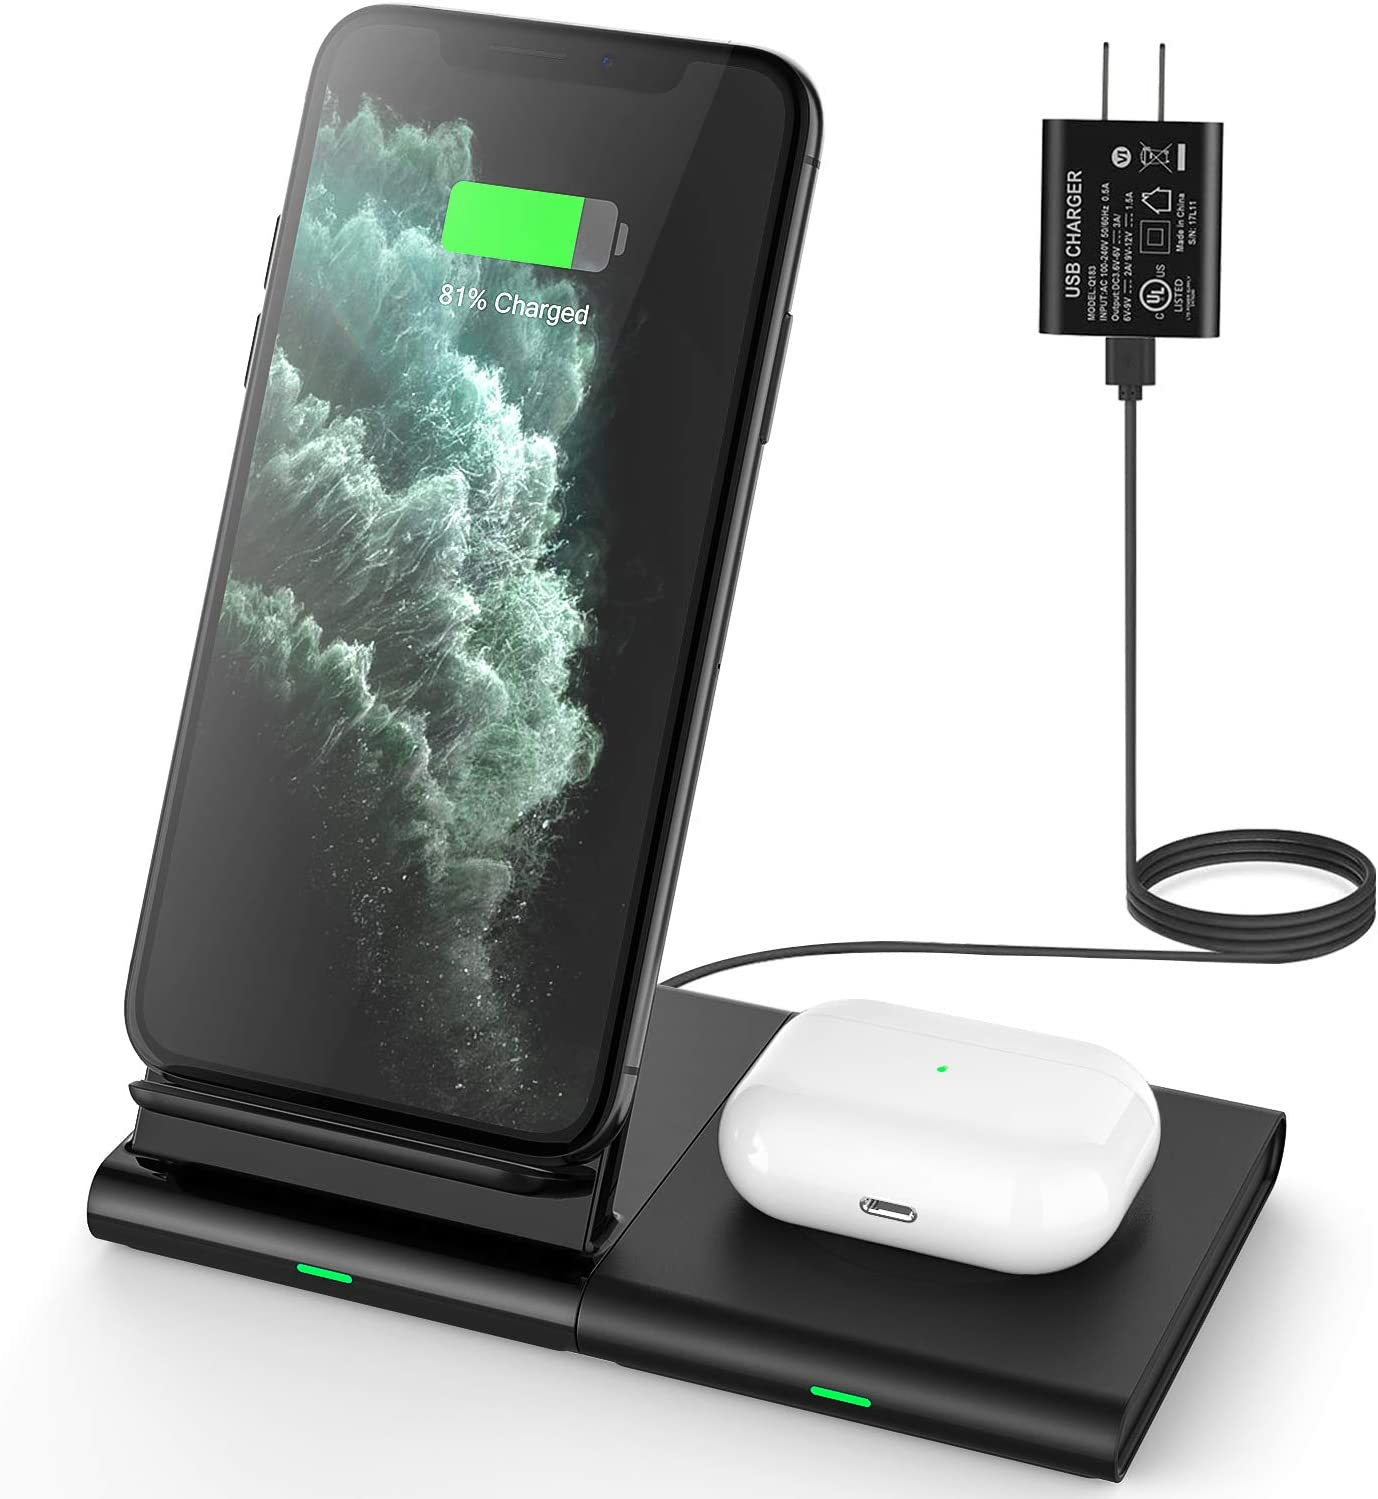 Hoidokly Dual 2 in 1 Wireless Charger Stand Qi 10W Fast Charging Station for Samsung Galaxy S20/S20 ultra/S10/S10e/S9/S8/S7/Note 10/9/8, 7.5W for iPhone SE 2020/11/Pro Max/XR/XS/X/8/8 Plus/Airpods Pro